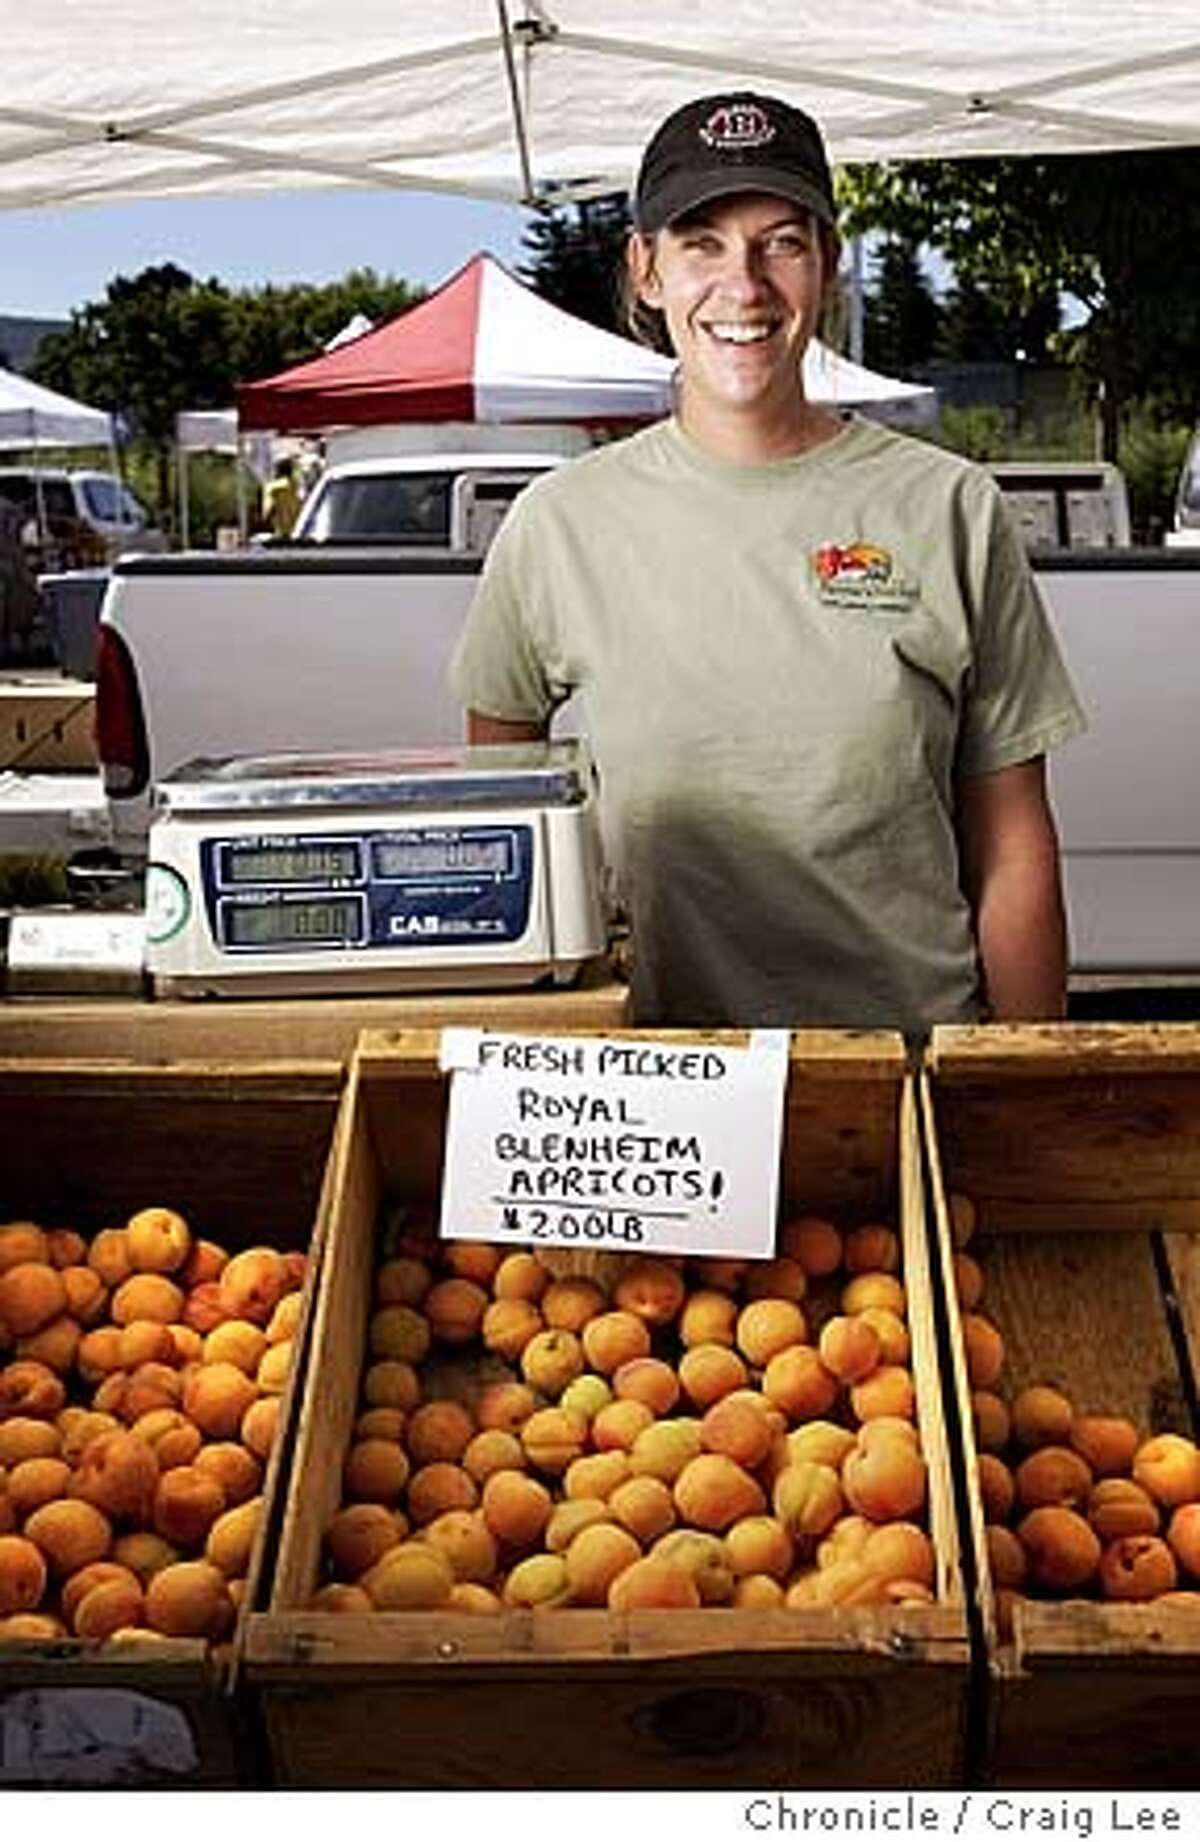 Michele Bera of Bera Ranch and the Blenheim apricots that she sells. Story is about Blenheim apricots (sometimes called Royals or Royal Blenheims) which are delicious and are not produced commercially. This photo was taken at the Napa Farmer's Market in the COPIA parking lot in Napa. Event on 6/8/04 in Napa. Craig Lee / The Chronicle